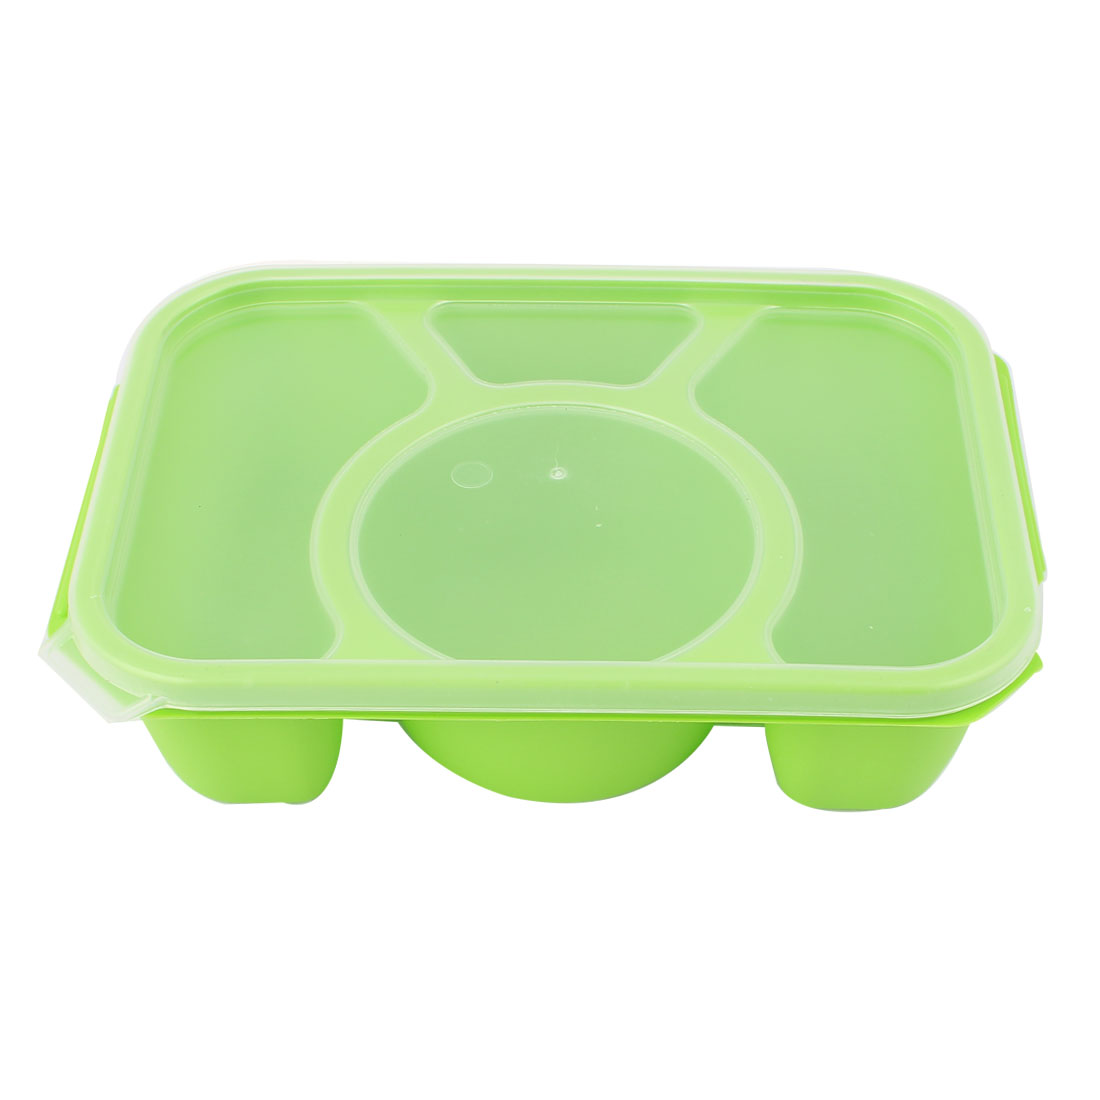 Clear Lid 4 Slots Green Plastic Vacuum Bento Crisper Food Storage Box Lunch Case Container